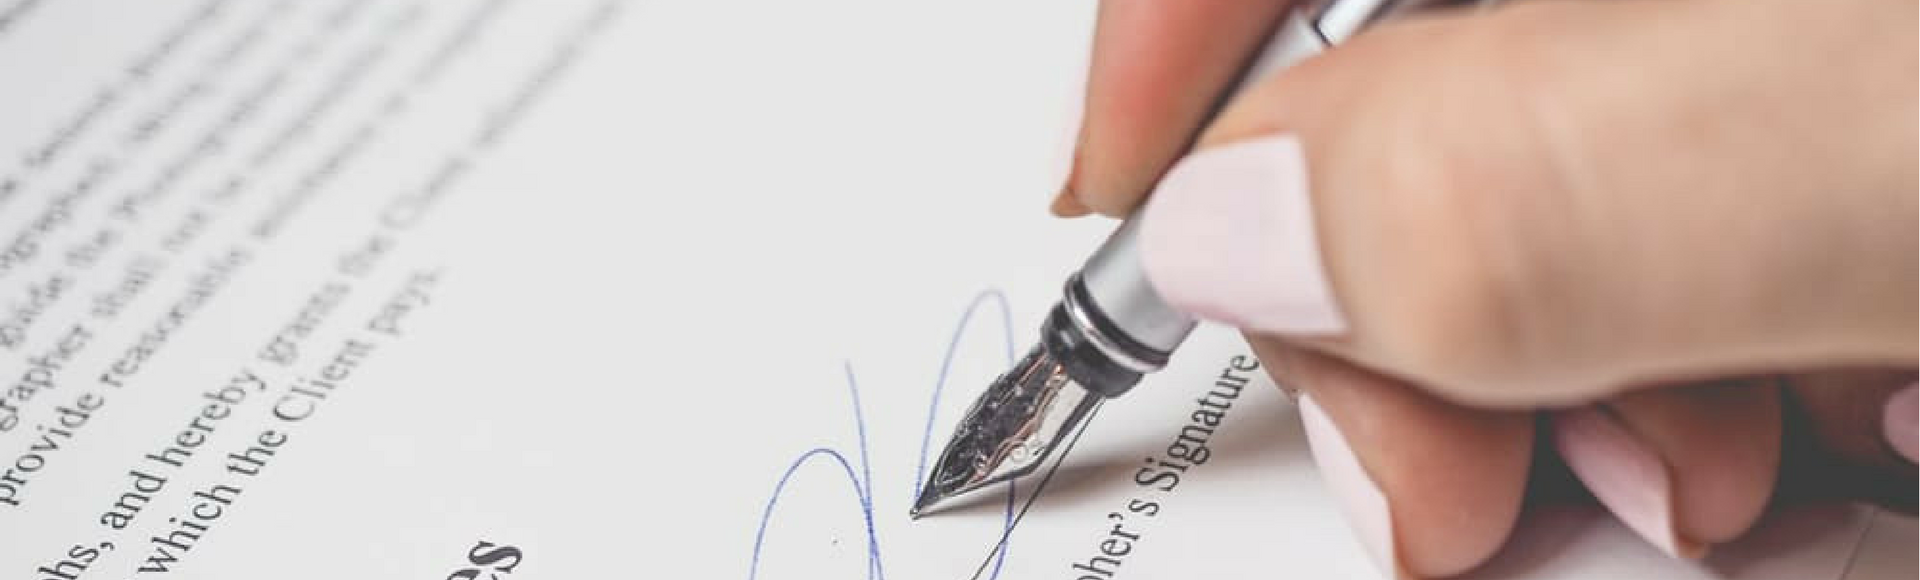 Person Holding Silver Pen Signing Employer's Signature, which never happens at FingerCheck which operates contract-free.